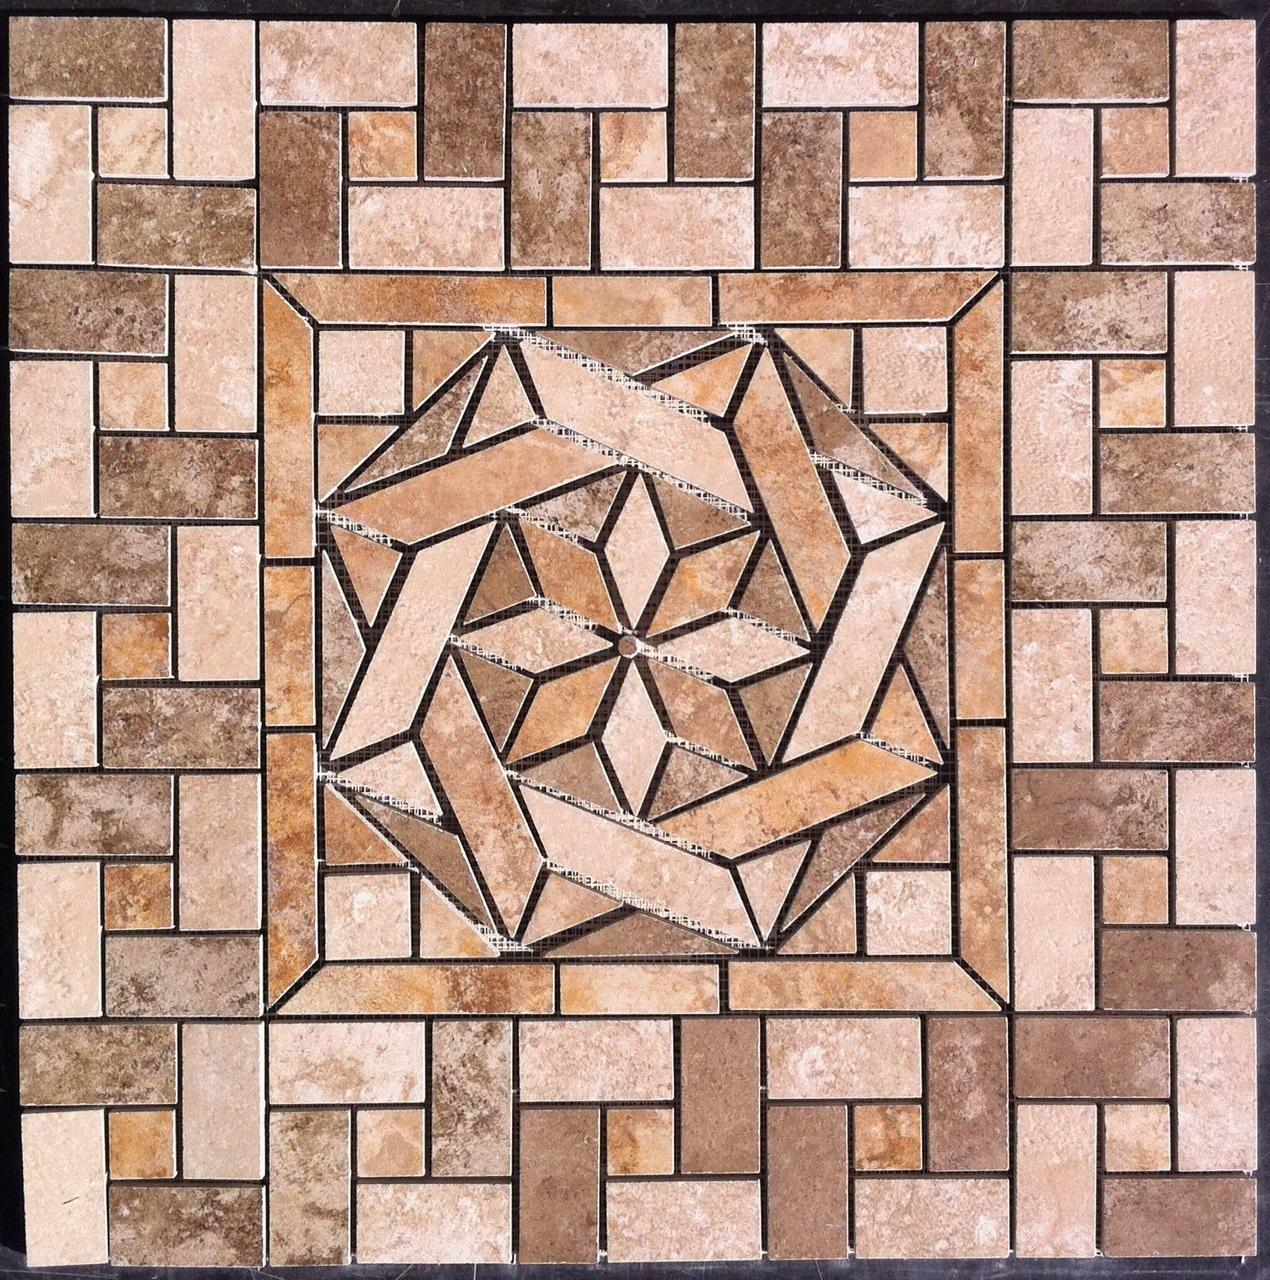 22 14 Ceramic Tile Medallion Daltiles Salerno Tile Floor Or